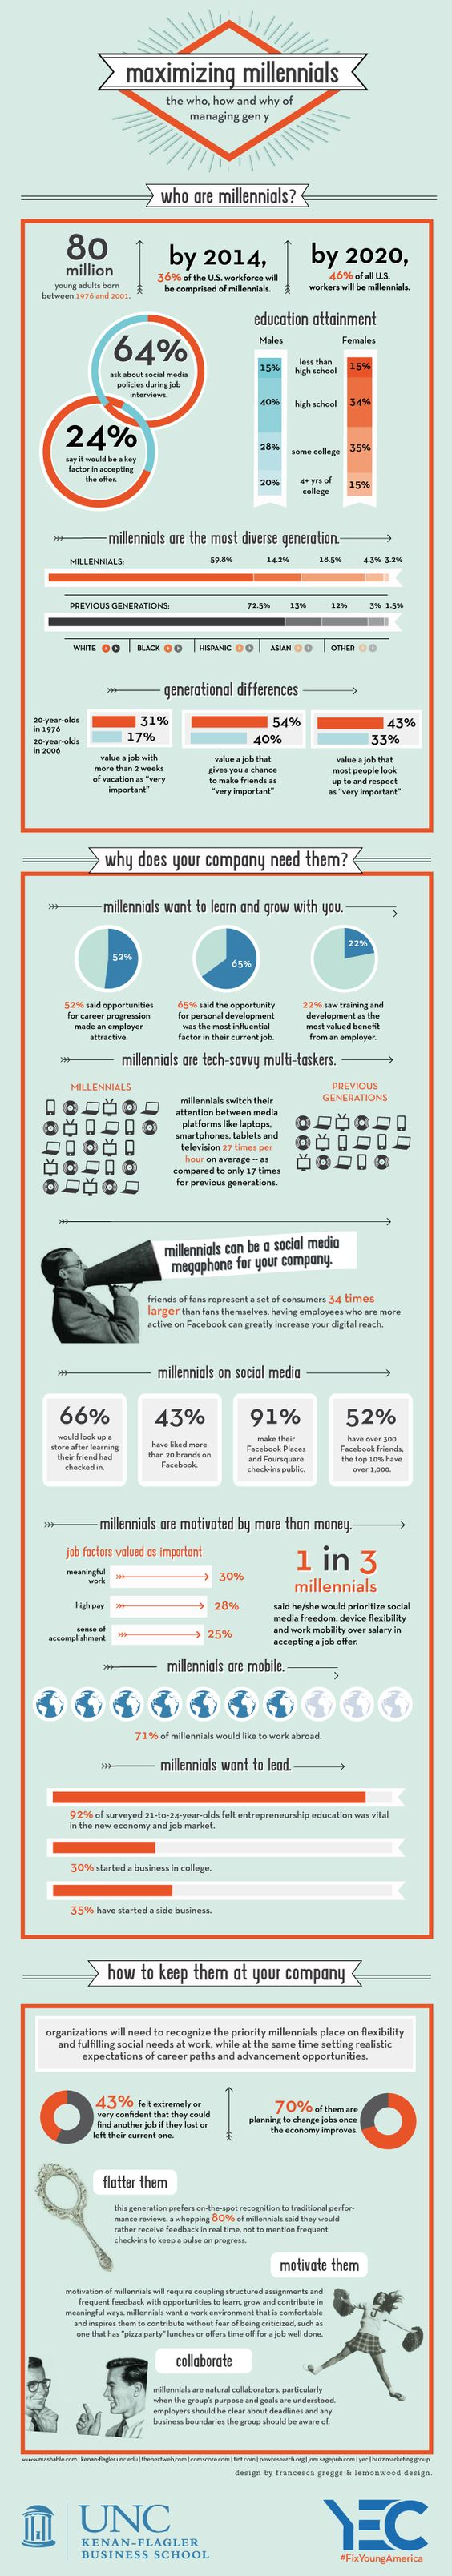 Millennials continue to be a force for change in the workforce by engaging current and future employers on social media about issues that matter to them. This infographic also goes into detail on how millennial employees can be a reputable mouthpiece for your organization.   HR Pros, how are you interacting with Millennials online? Tell us by leaving a comment below!